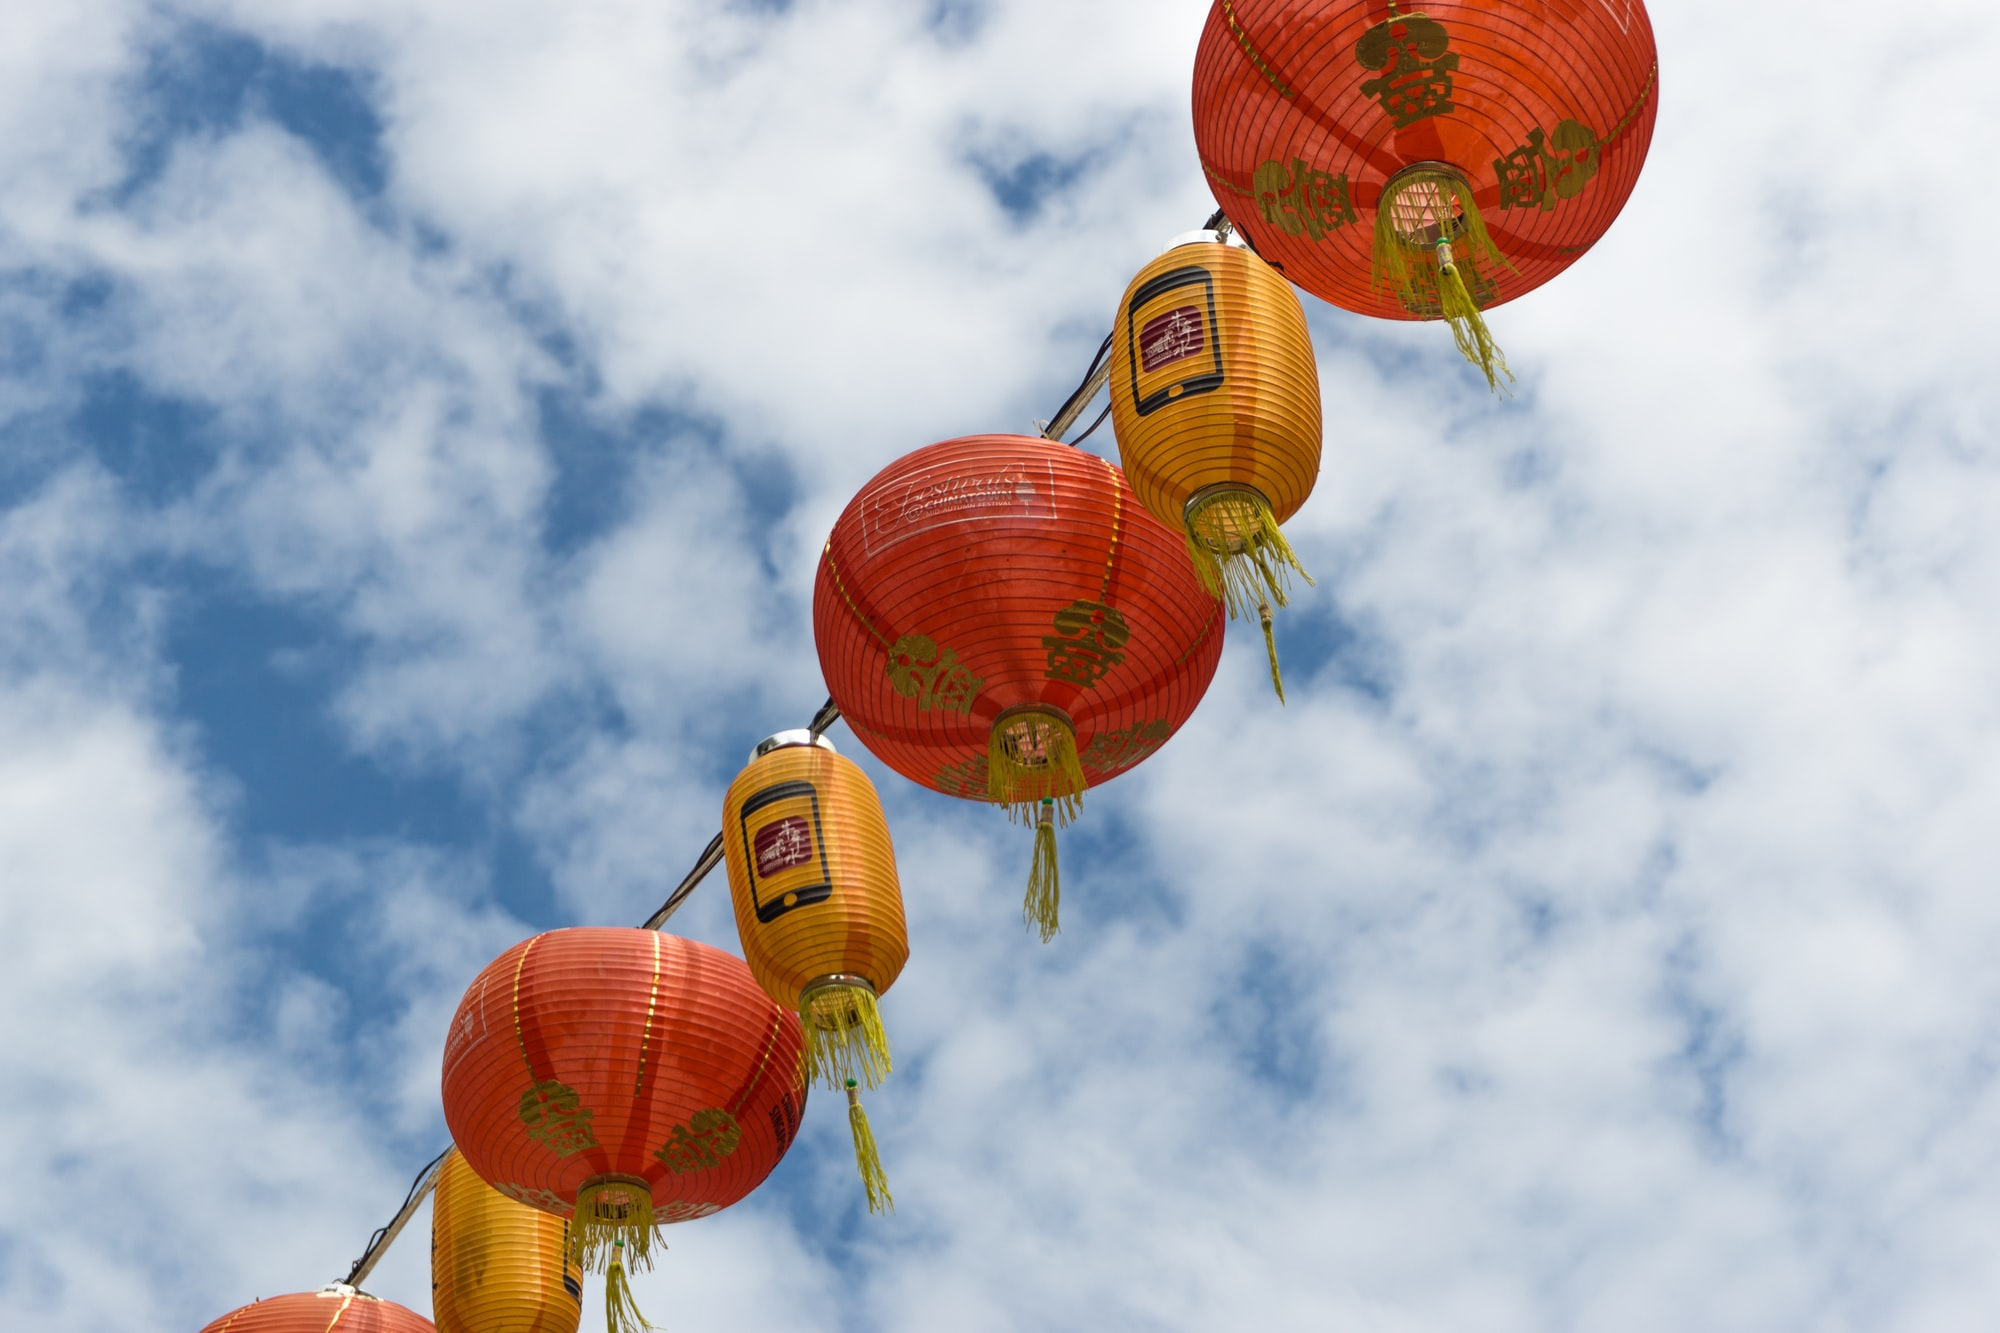 Chinese lanterns hanging high above with cloudy sky.